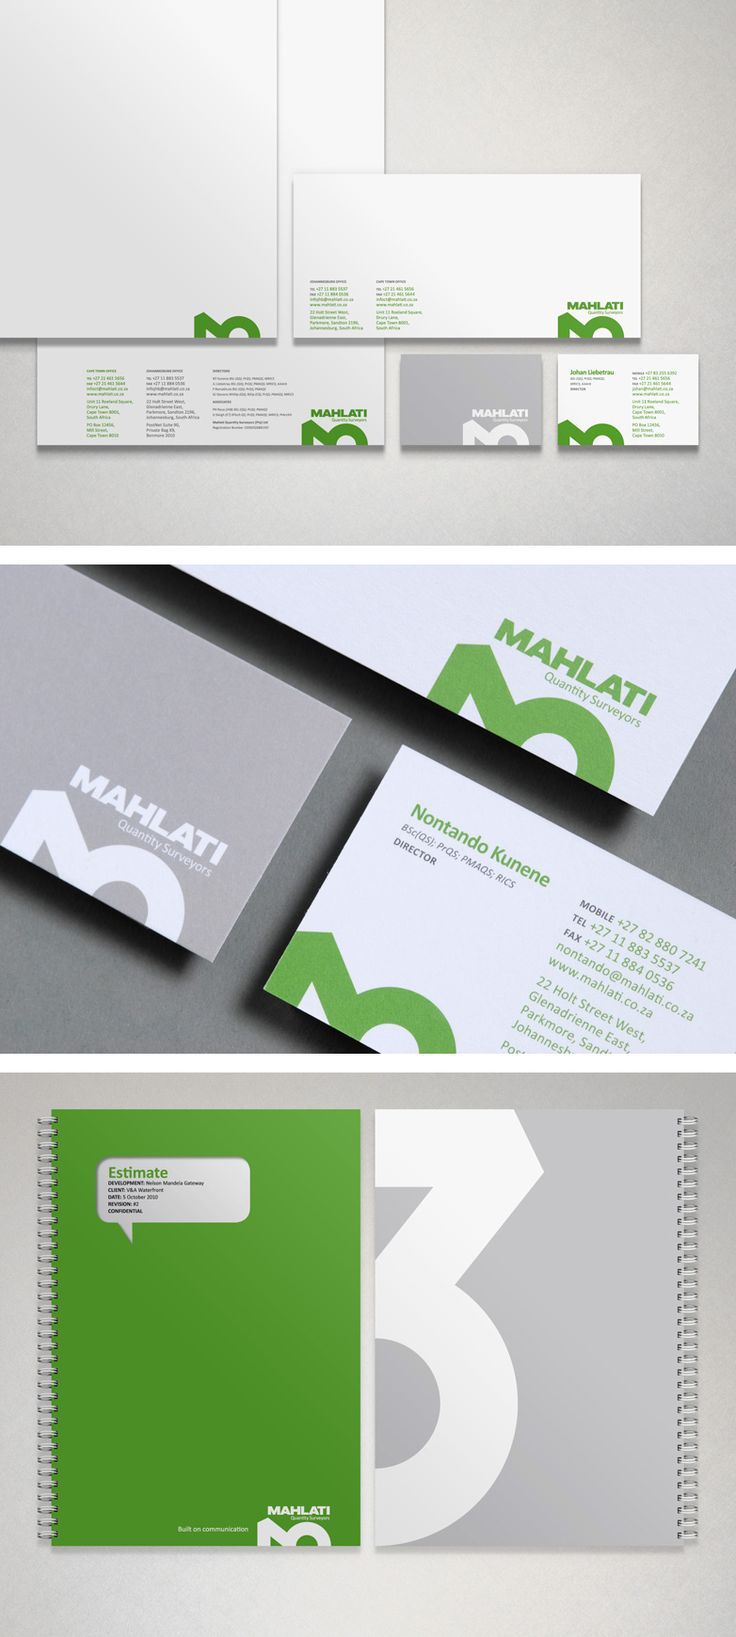 Mahlati corporate identity design - Wondering about the W x H of that business card...